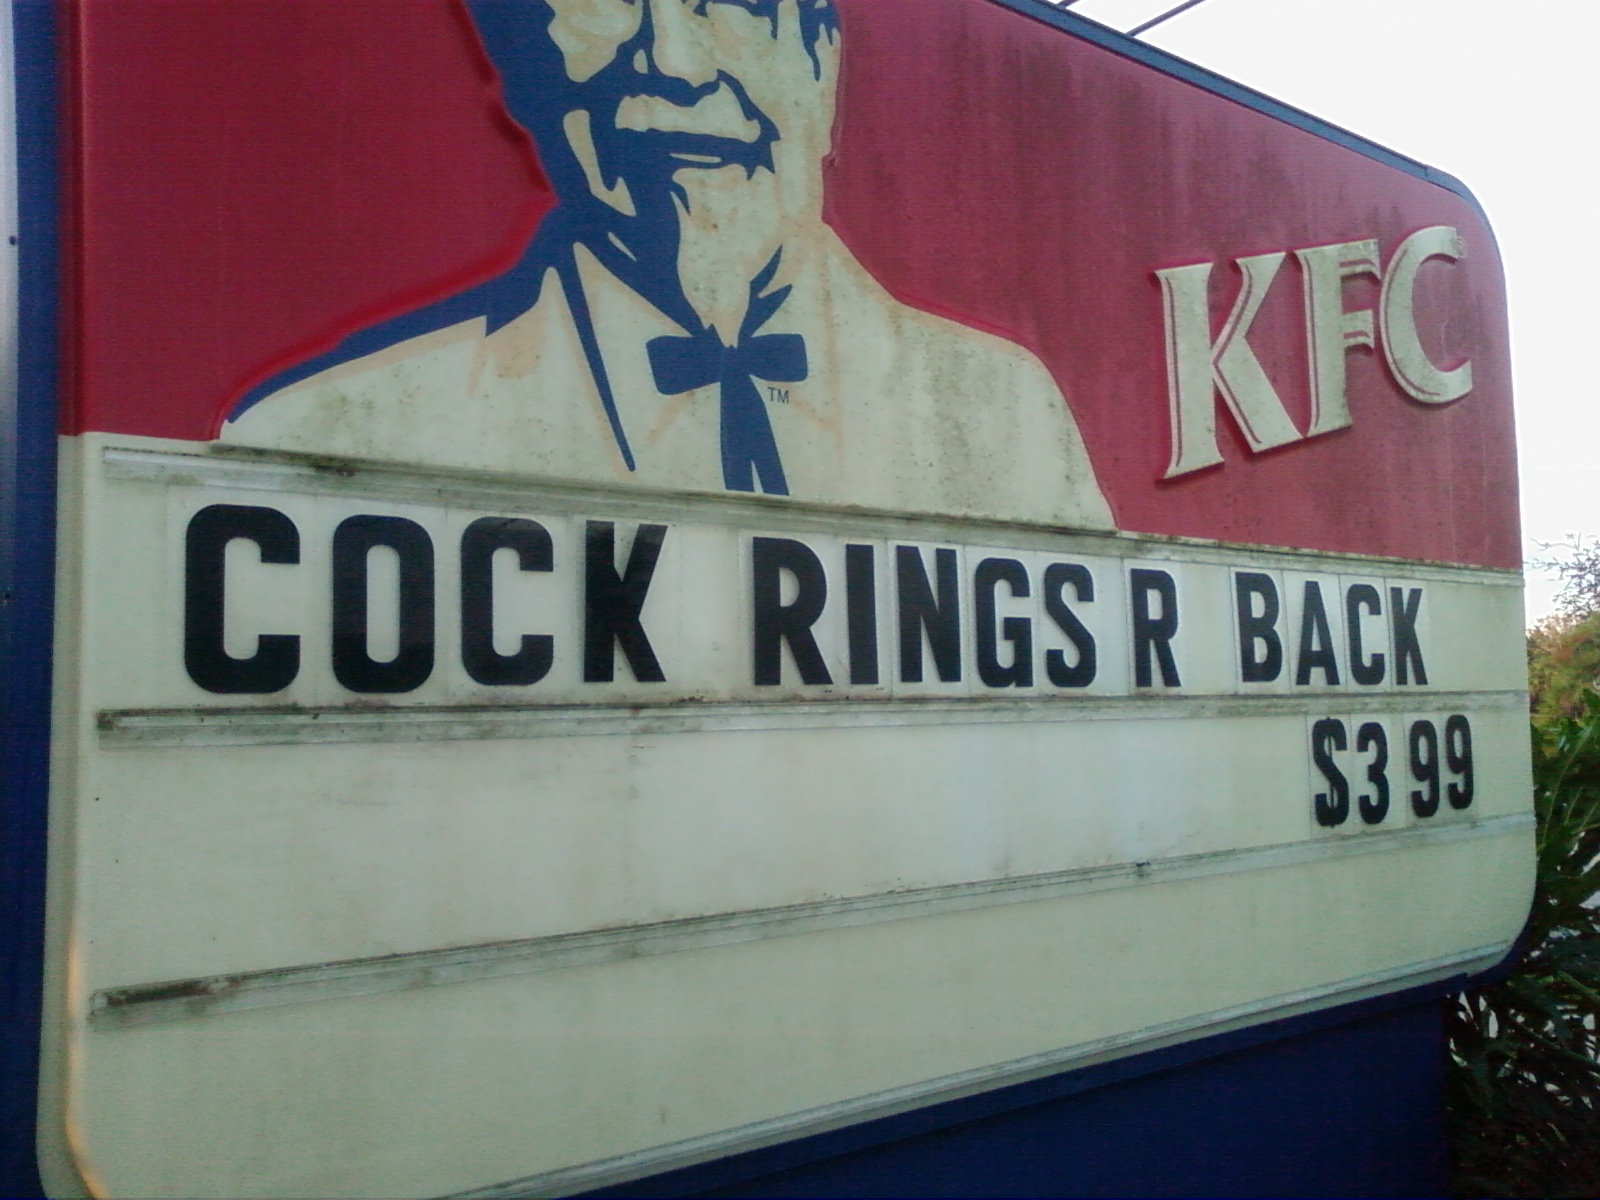 Funny Kfc Pictures 13 Pics: KFC Sign Sabotage - Picture